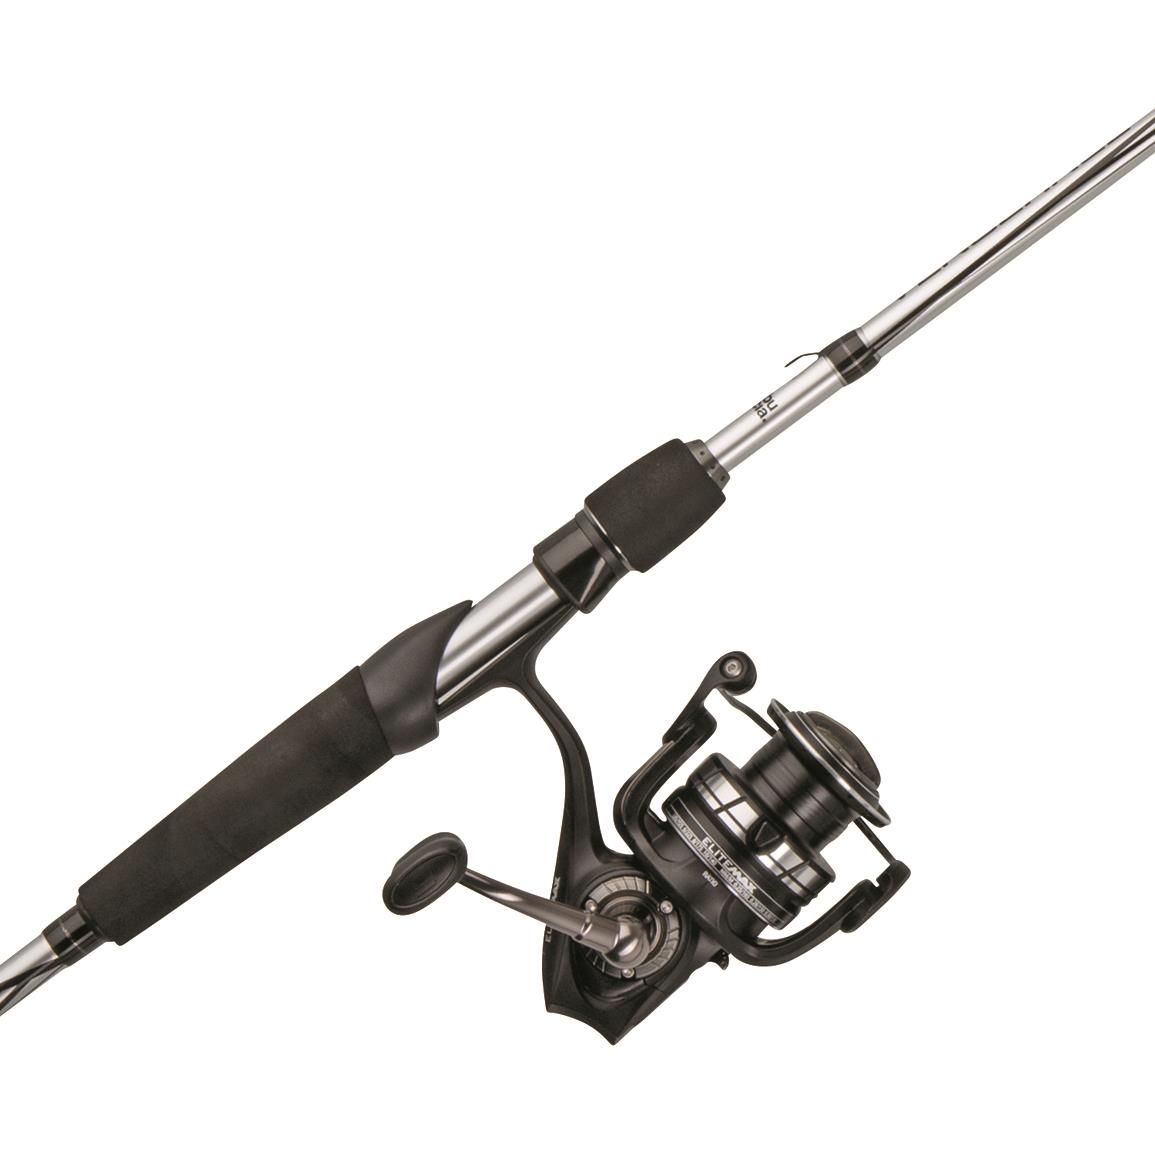 Abu Garcia Elite Max Spinning Rod and Reel Combos